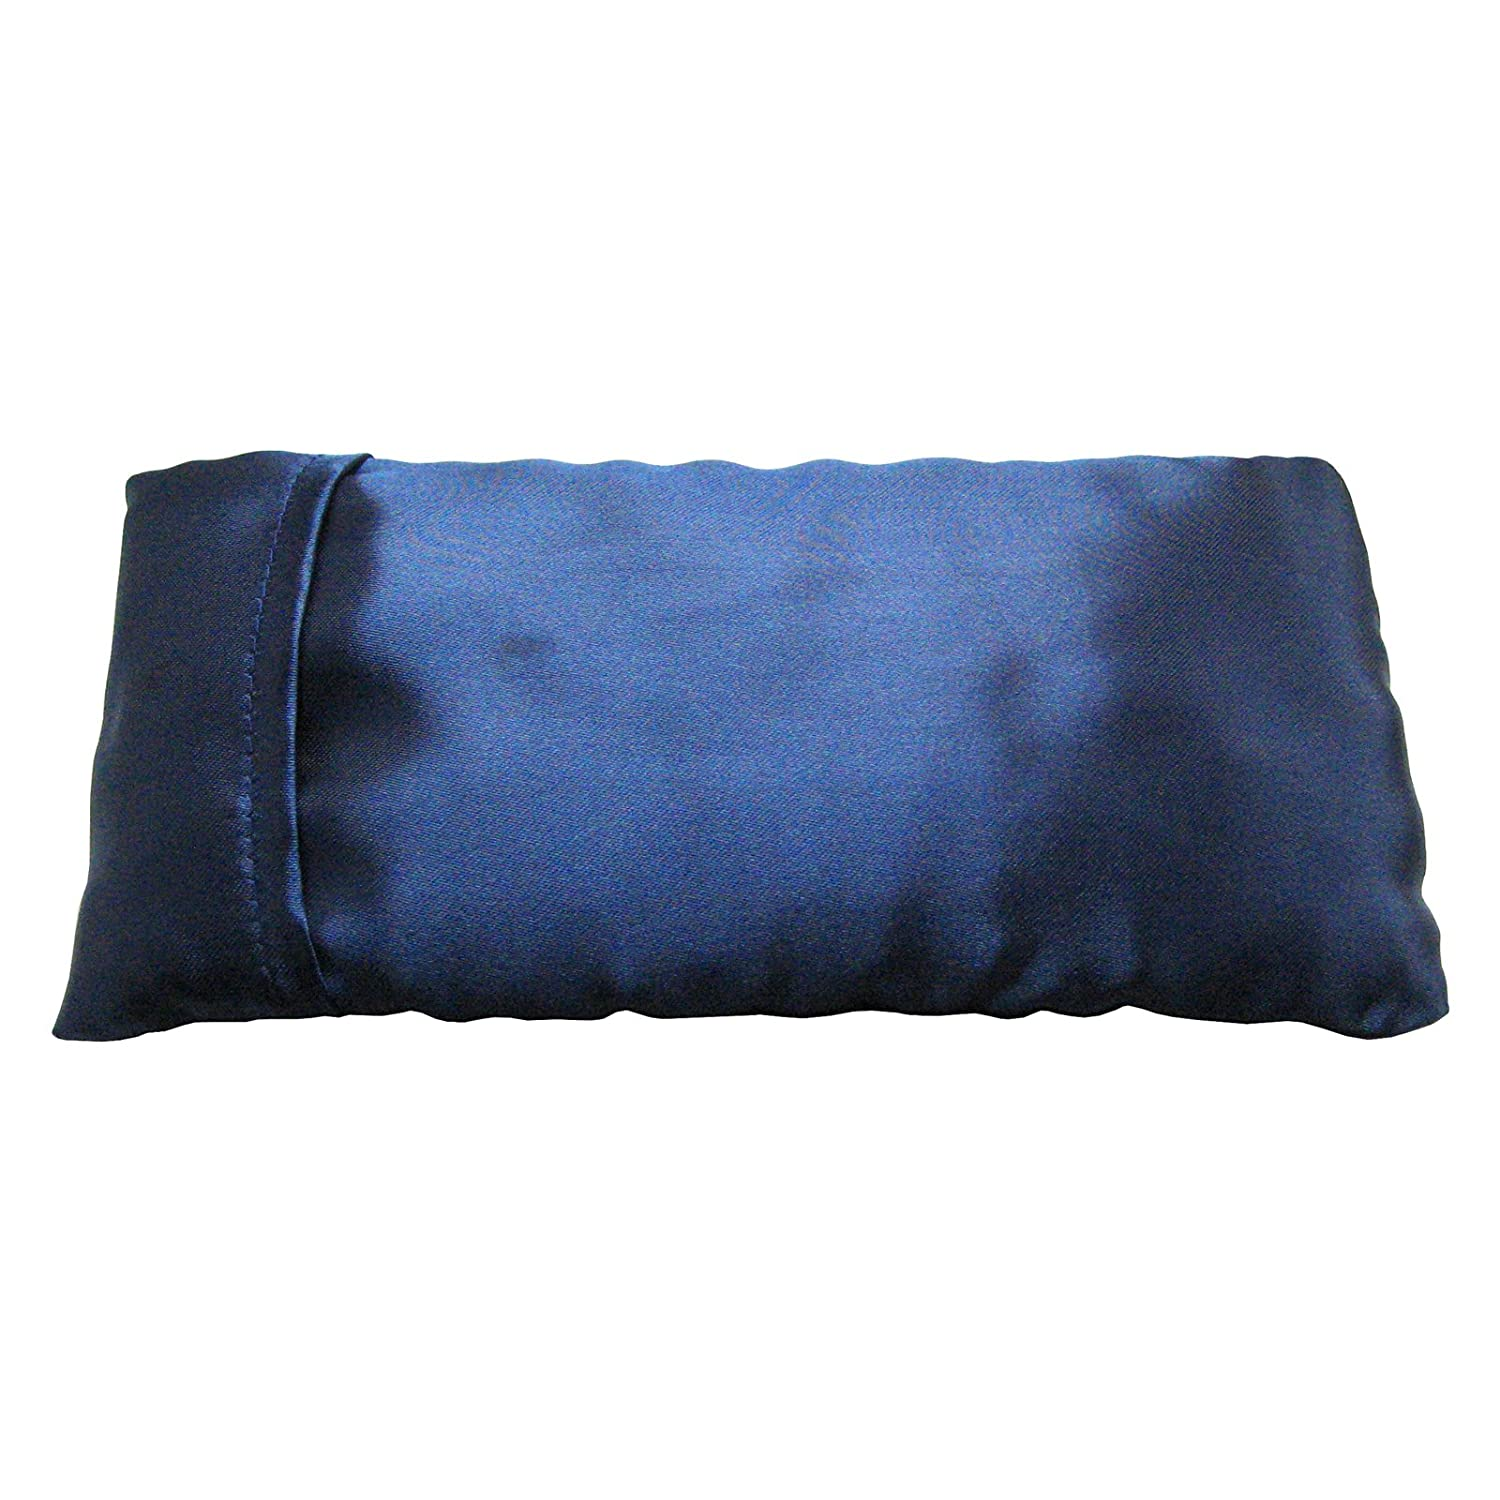 Dark Blue Eye Pillow - Plain, unscented Flaxseed Ruth White Yoga Products Ltd